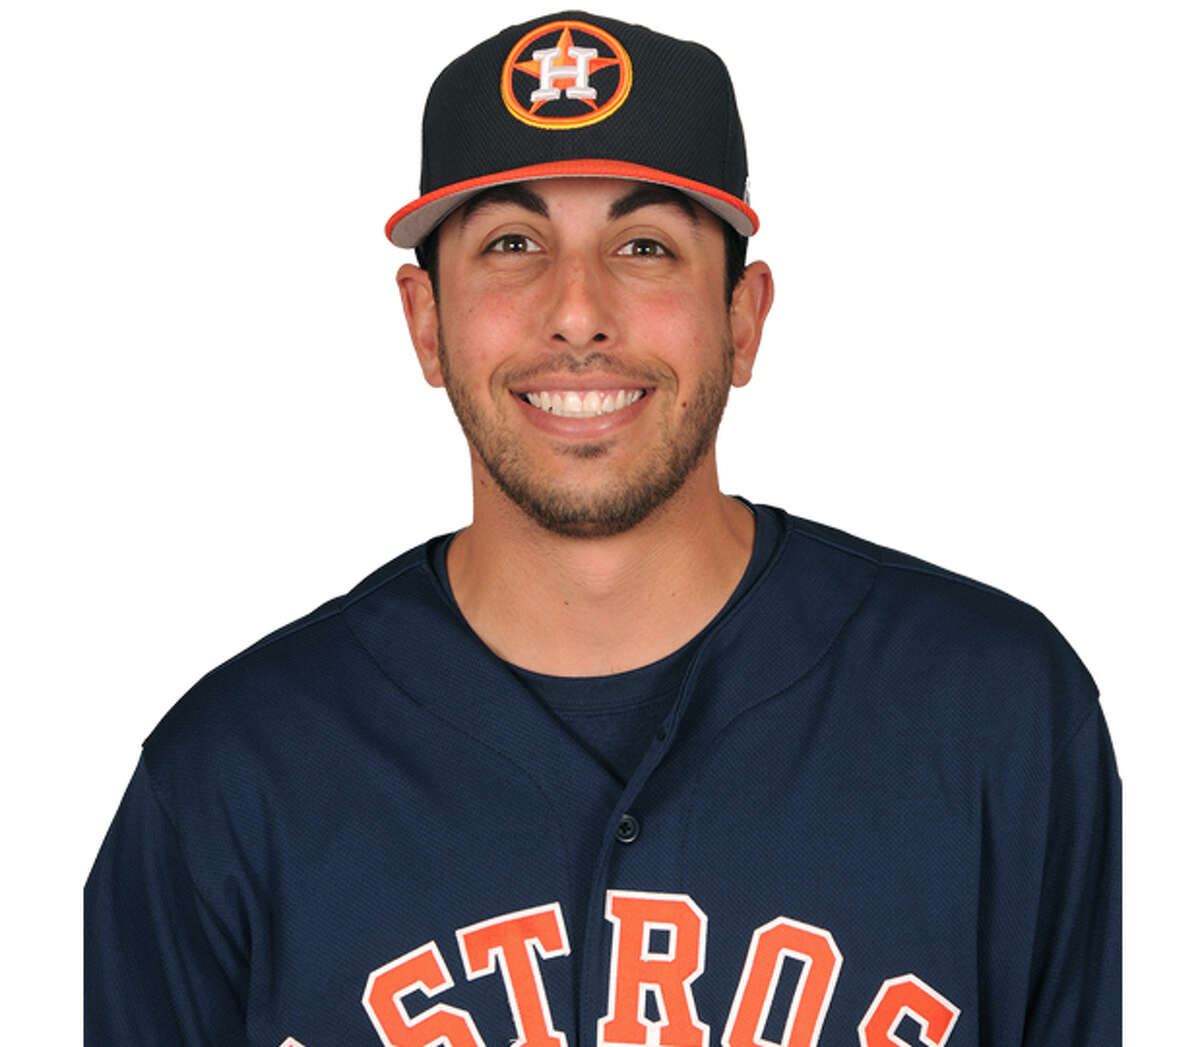 Jason Bell was development coach for the Quad Cities River Bandits, the Astros' Class A affiliate that won the Midwest League last year. (Tri-City ValleyCats)